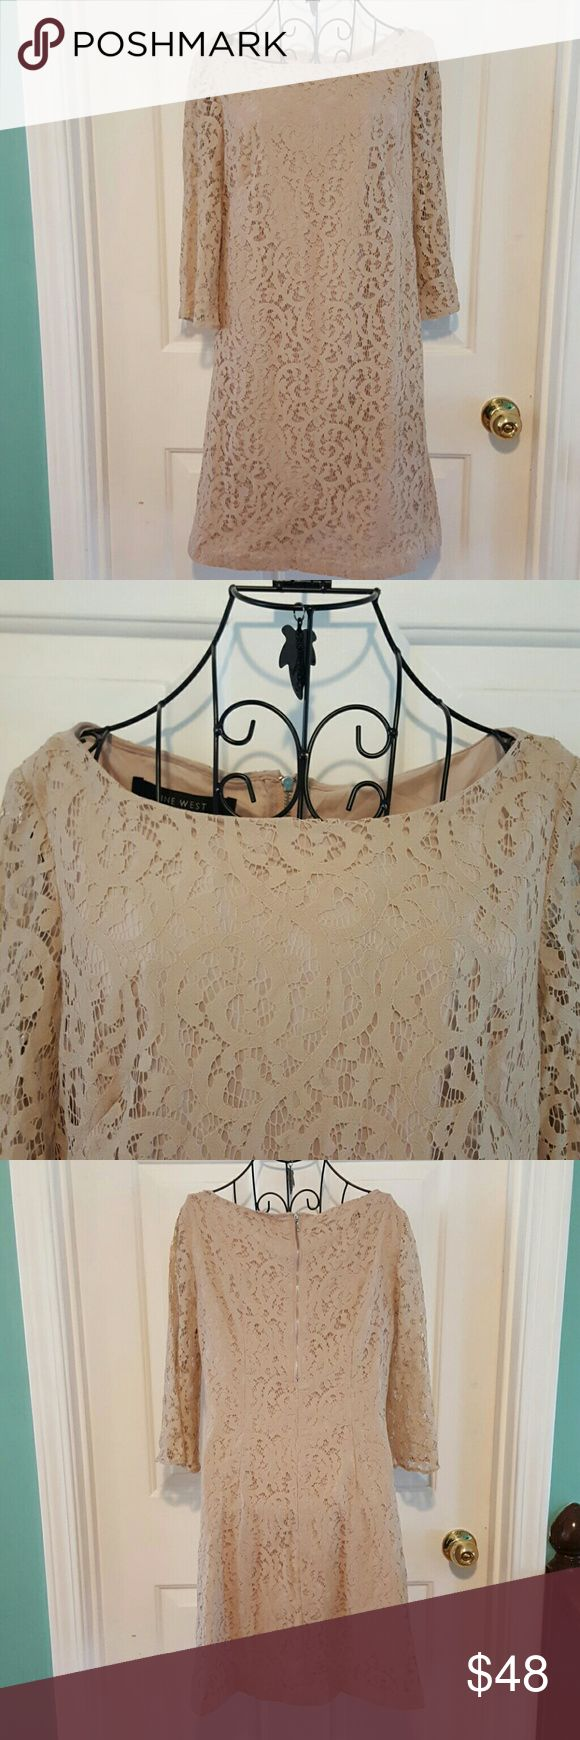 SALE!! Nude lace dress NWOT. Beautiful nude dress with lace overlay. 3/4 length sleeves. Half back zip. Pretty ballet neck. Nine West Dresses Long Sleeve